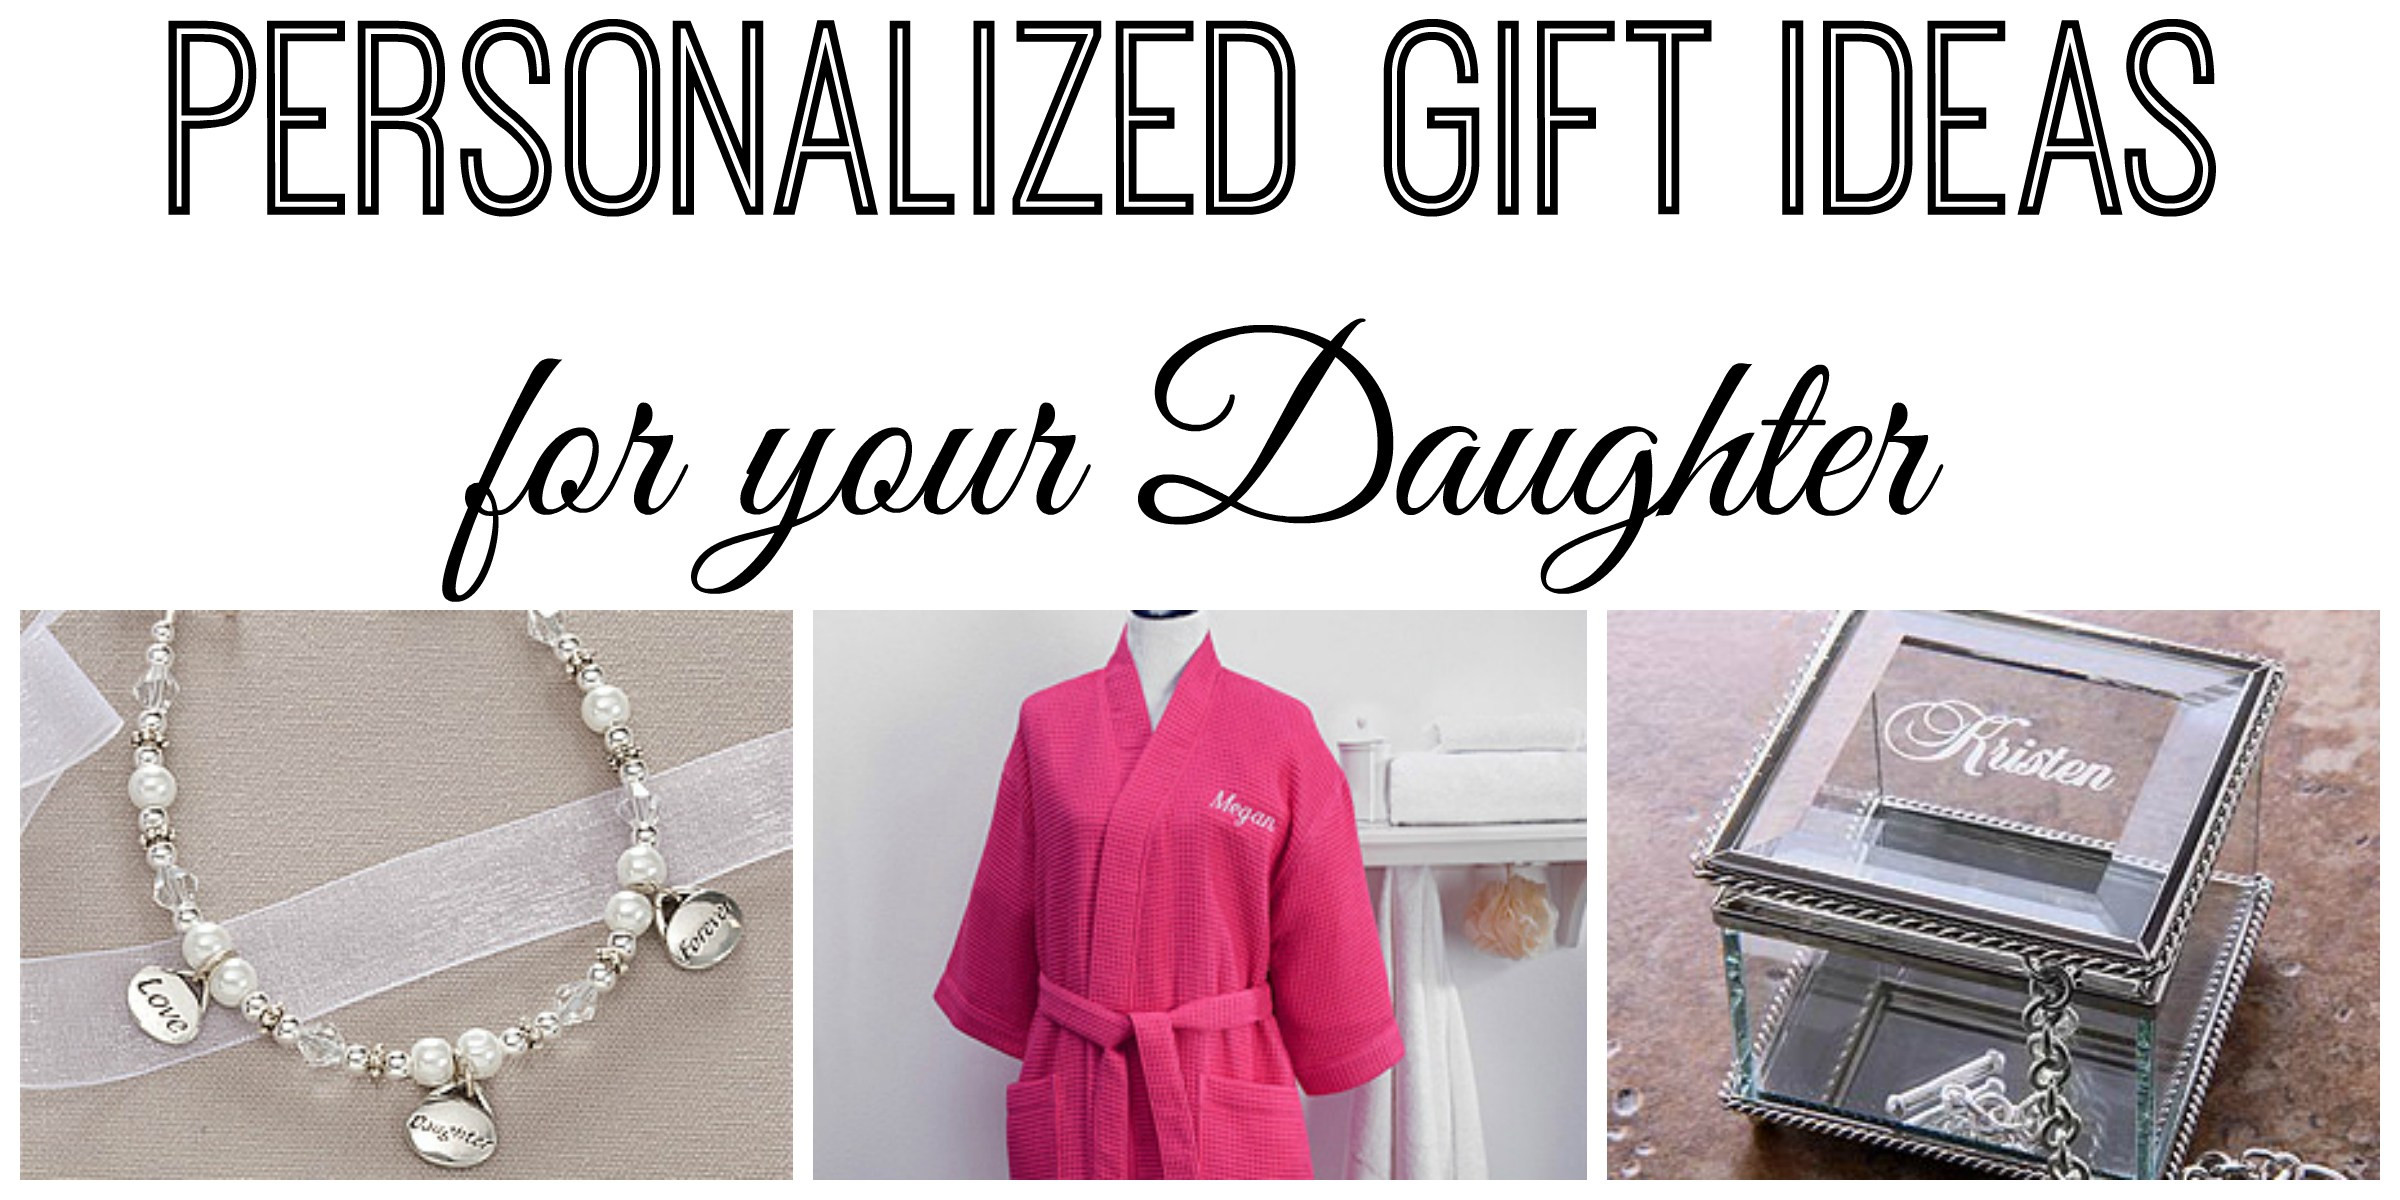 Best ideas about Engraved Gift Ideas . Save or Pin Personalized Christmas Gift Ideas for your Daughter Now.